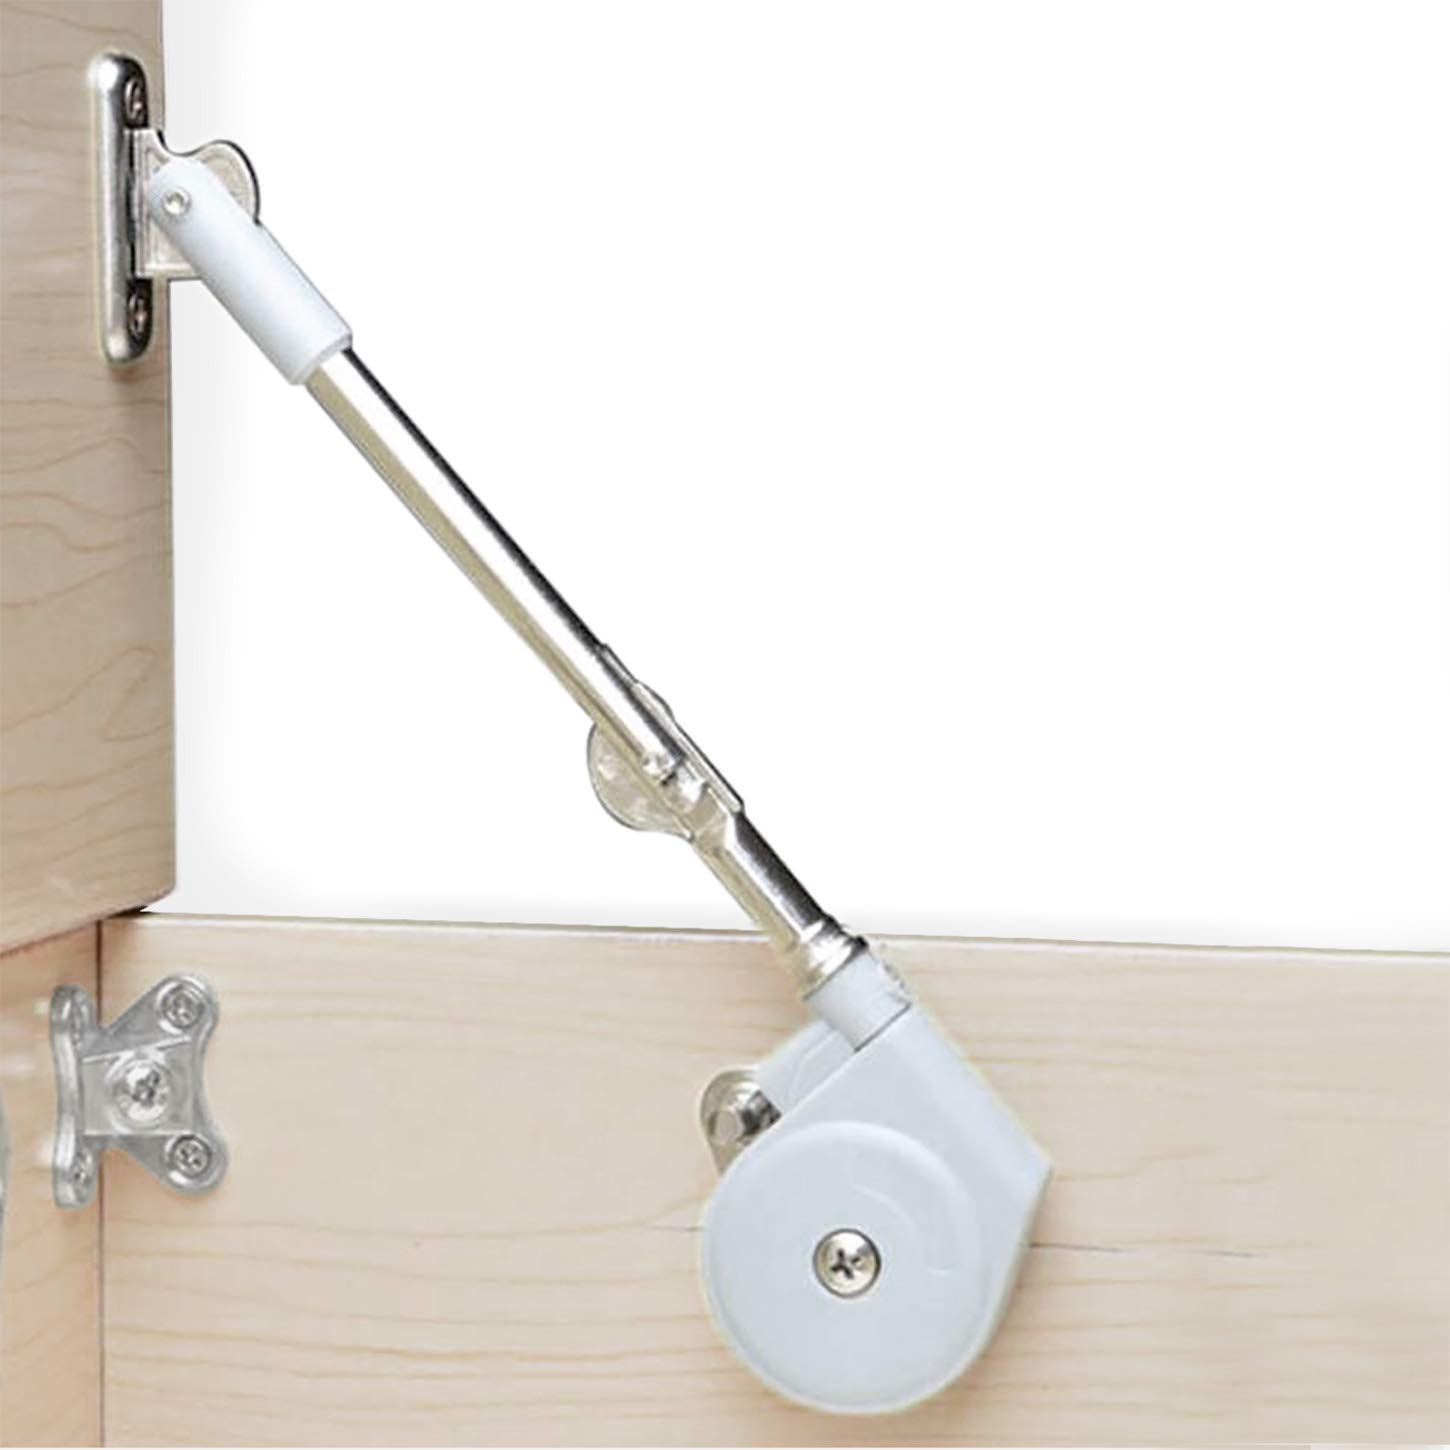 Lid Stay 105 Degree Open with Soft Close, Lid Support for Toy Box and Upward Top-Opening Flap Doors, Easy to Install